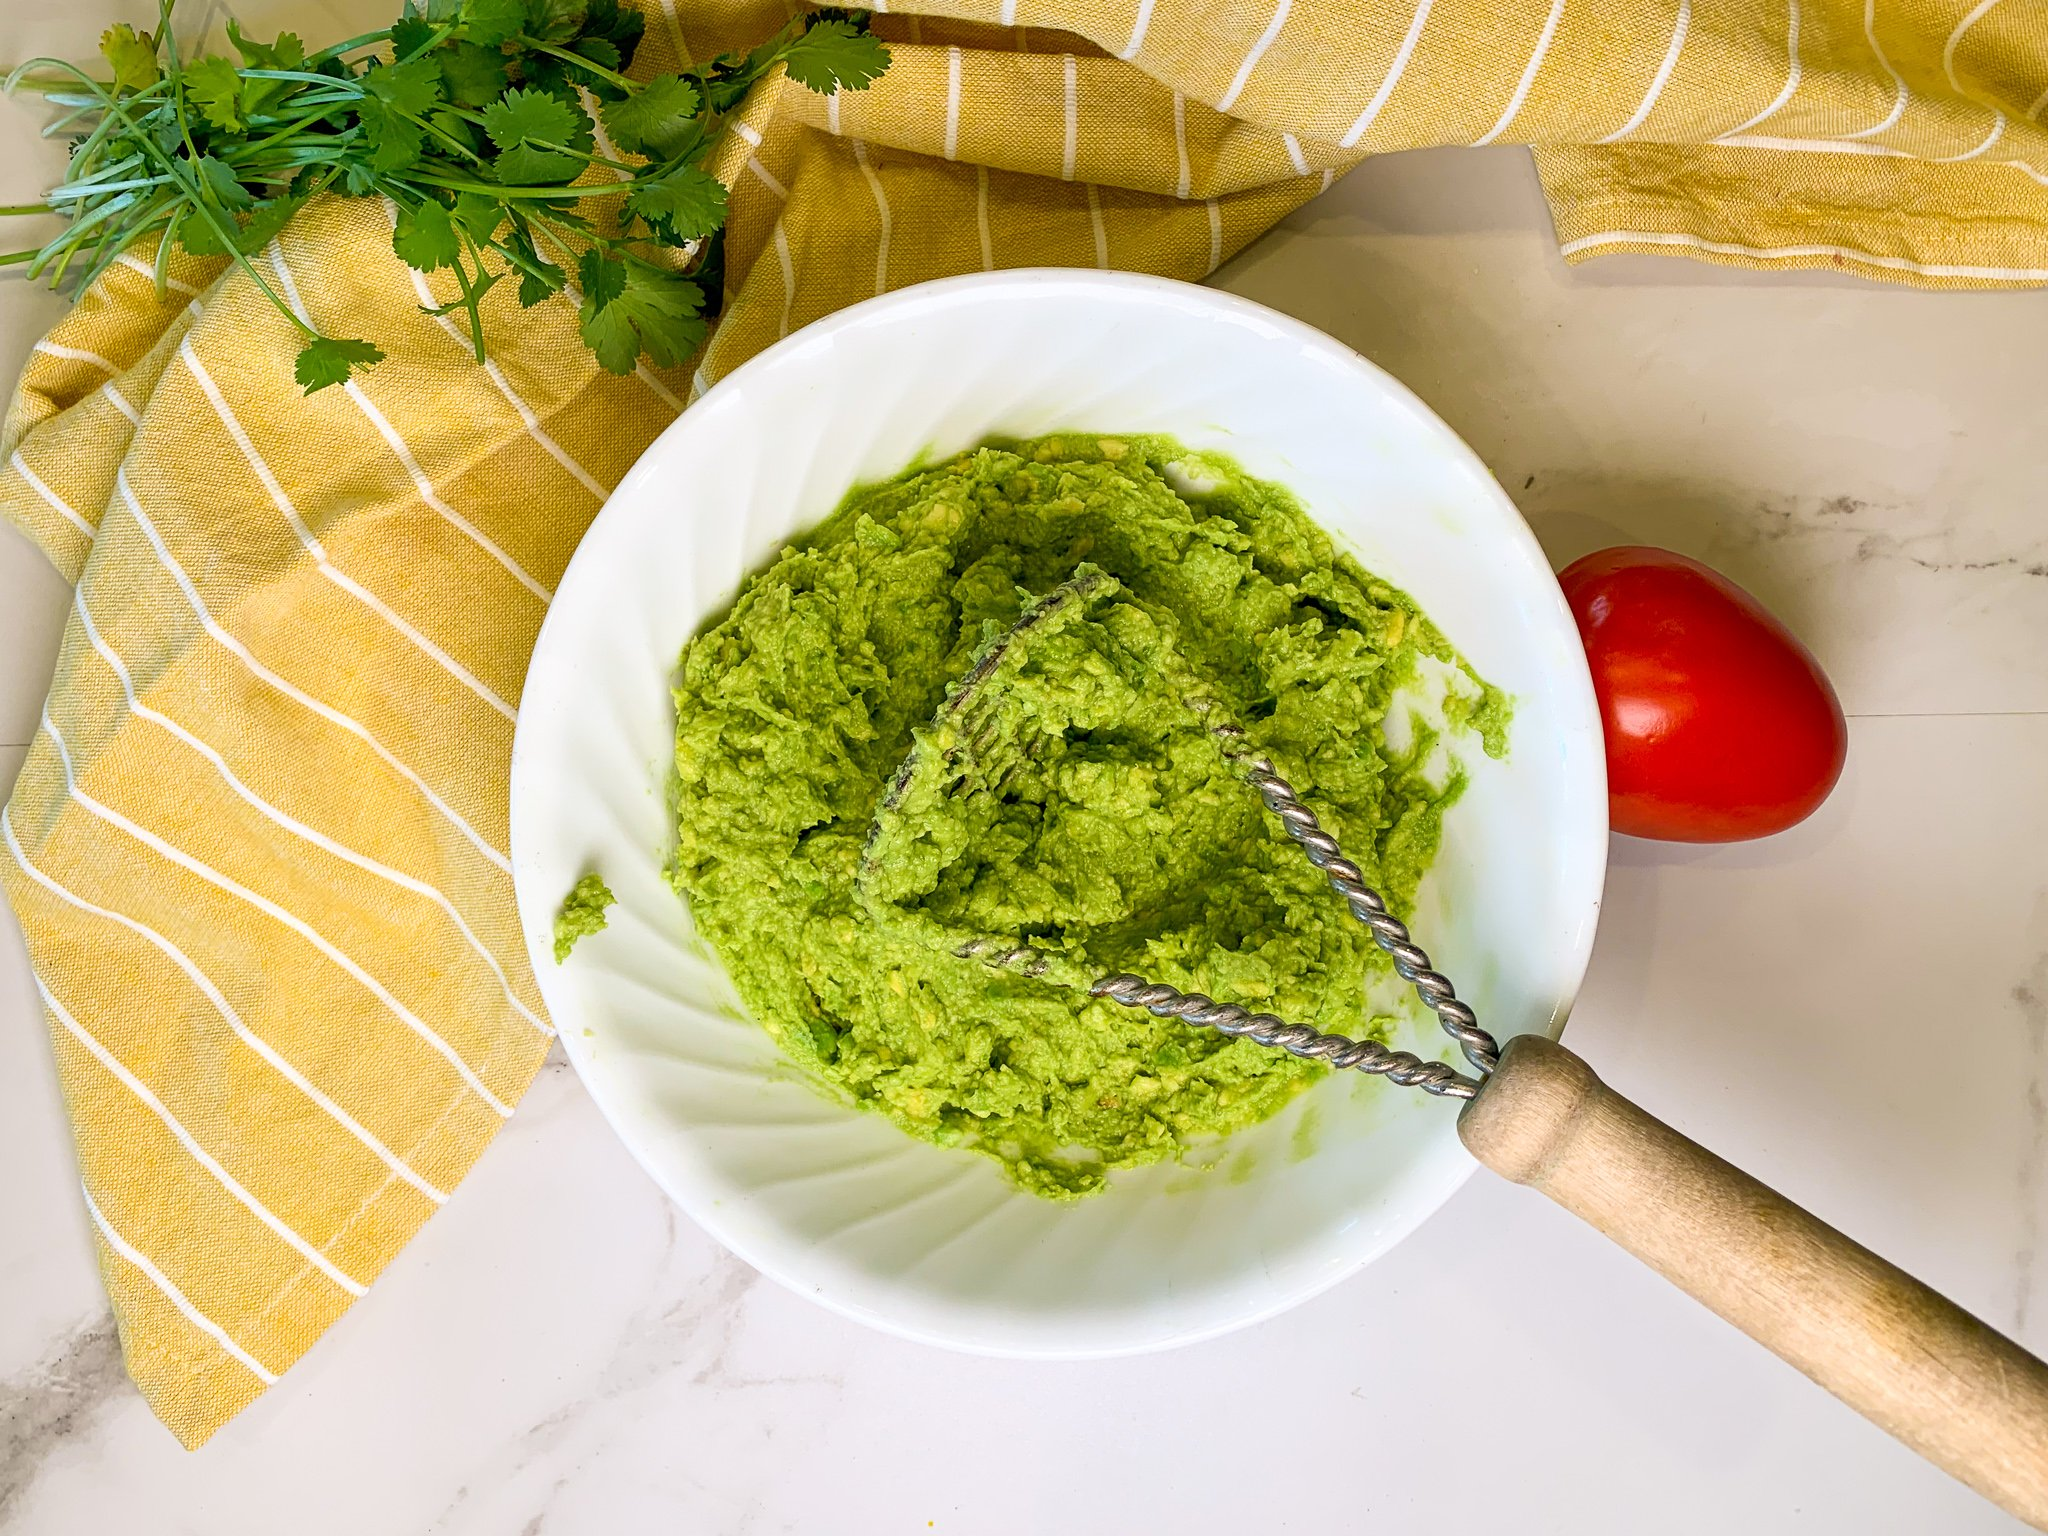 Mashed Avocados in a bowl